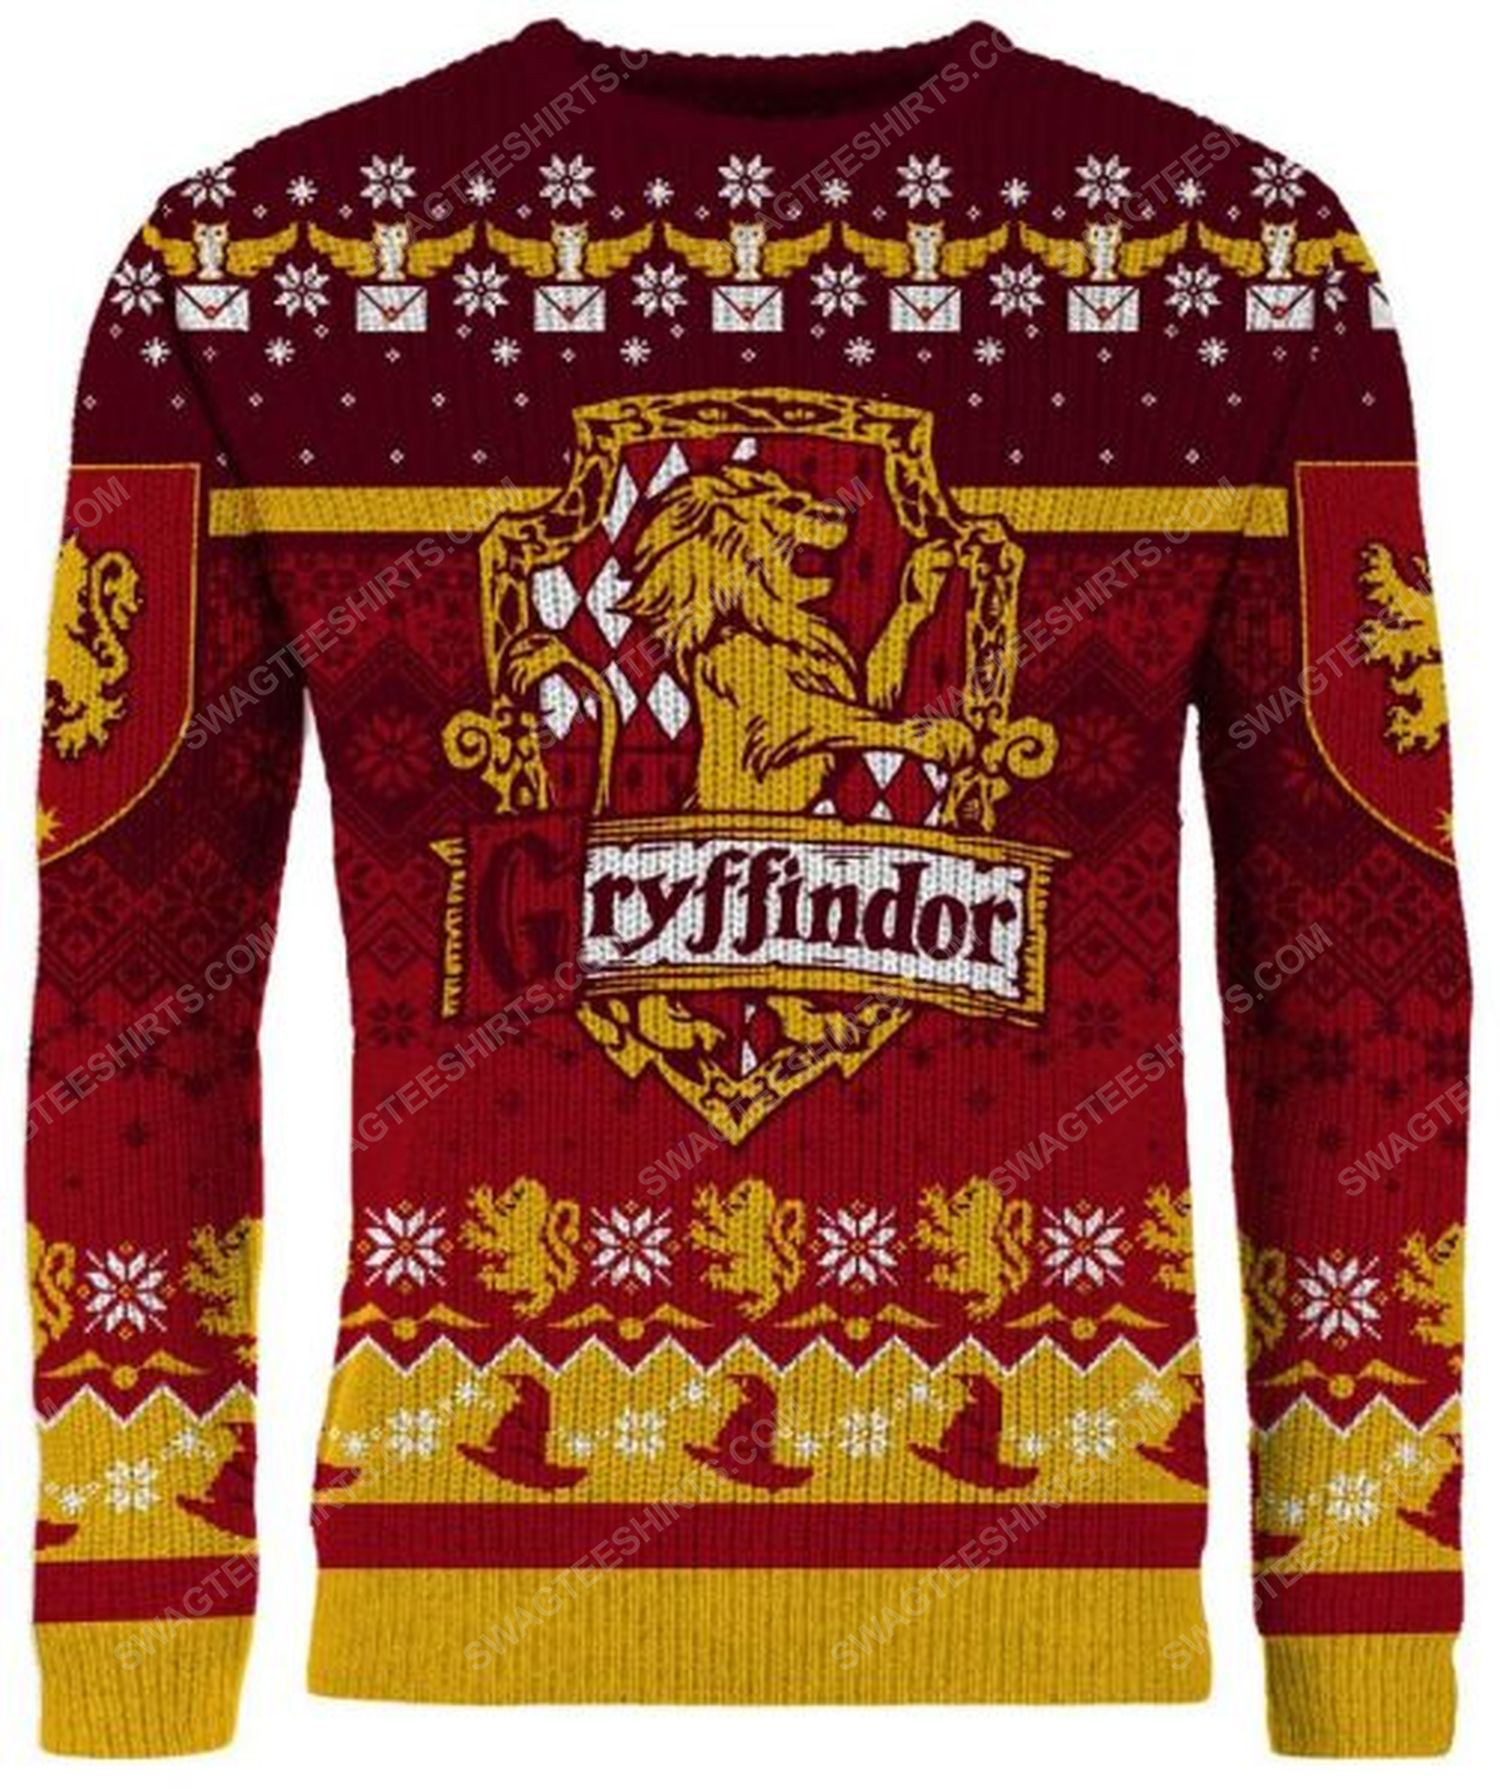 The gryffindor harry potter full print ugly christmas sweater